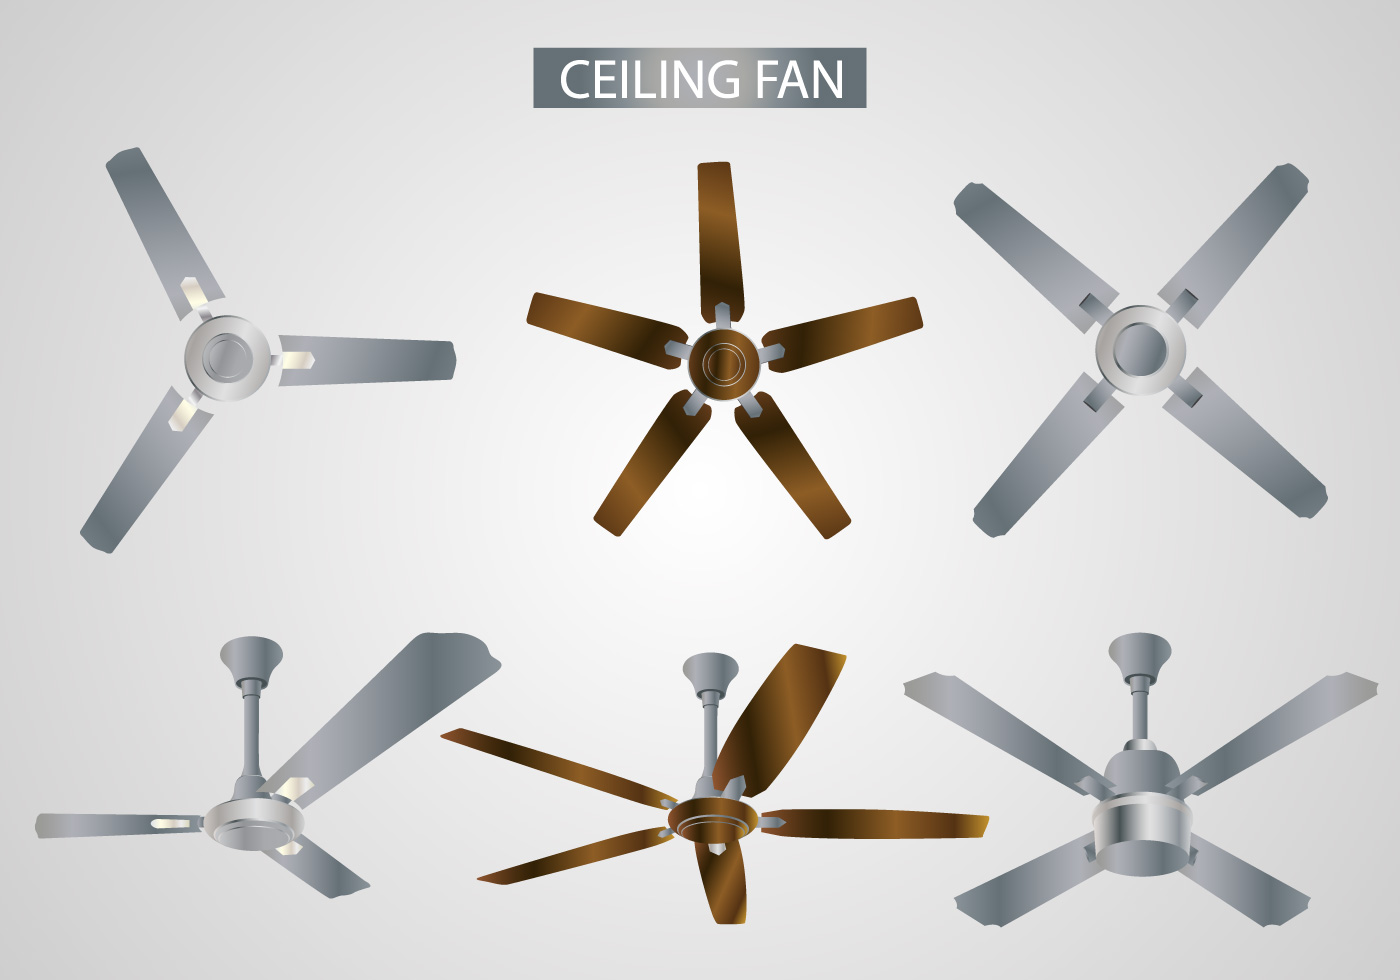 Realistic Ceiling Fan Vectors